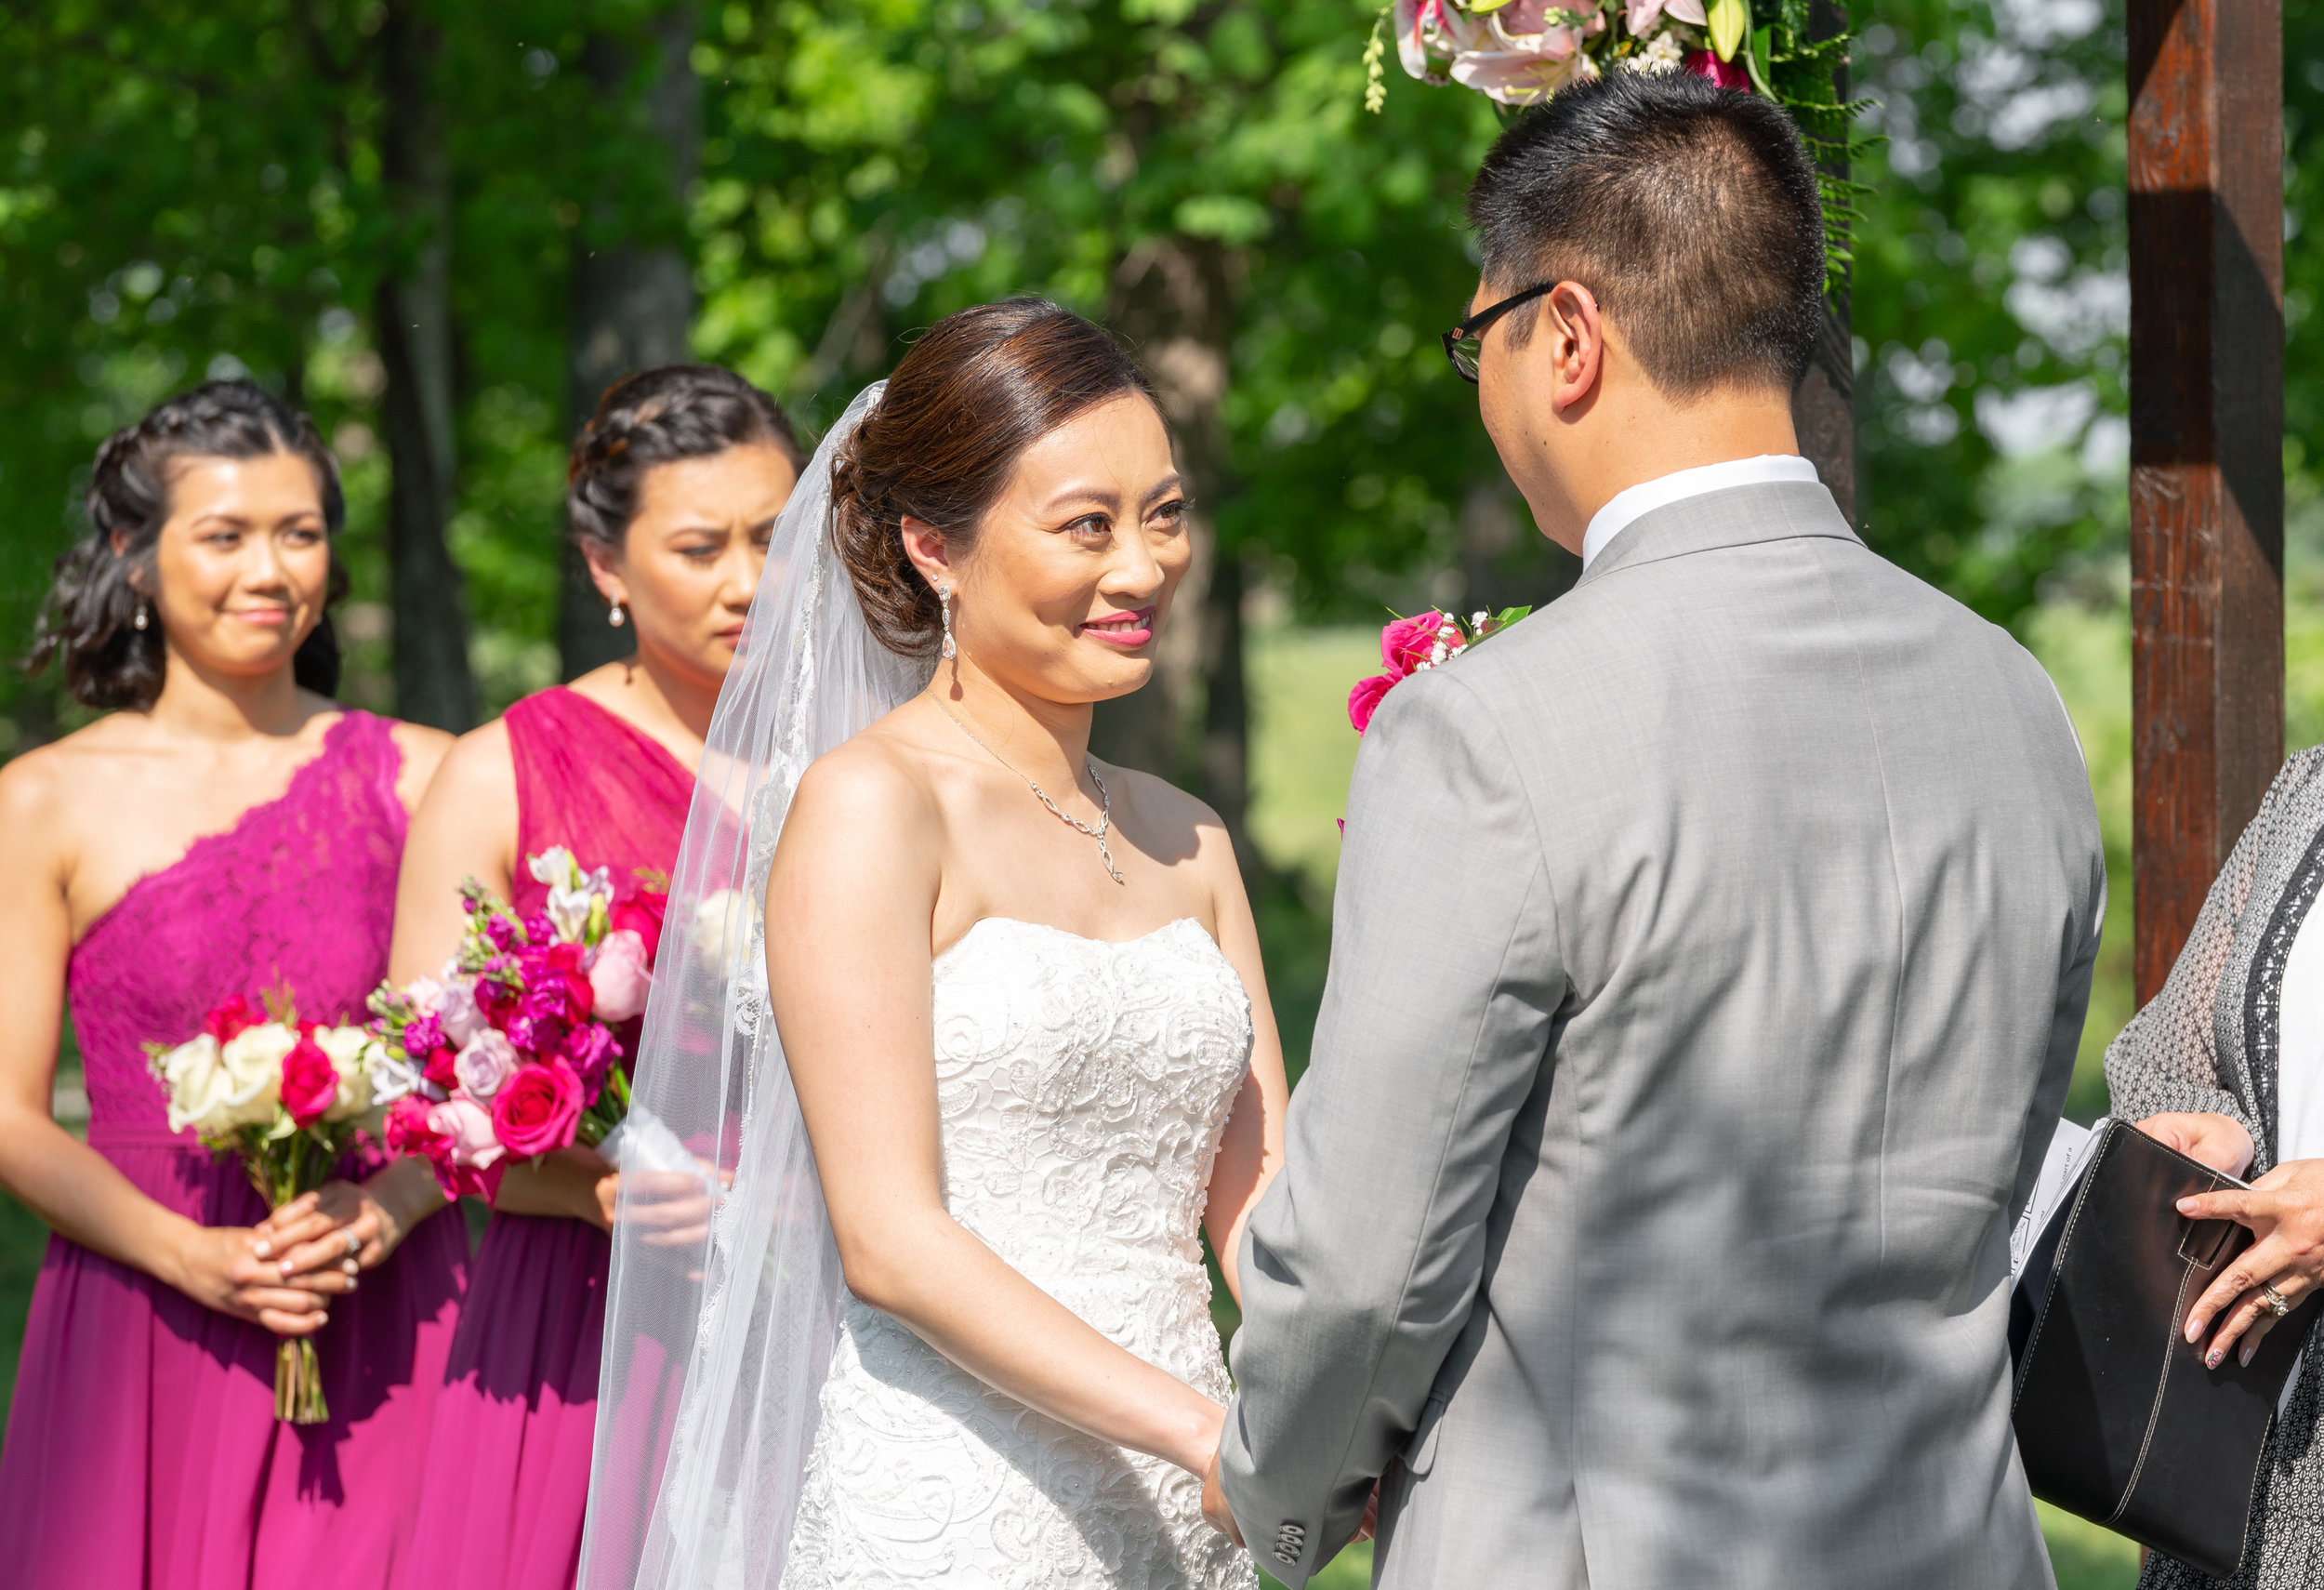 Chinese Filipino fusion wedding at Lost Creek Winery shot with Sony a7riii and 70-200mm